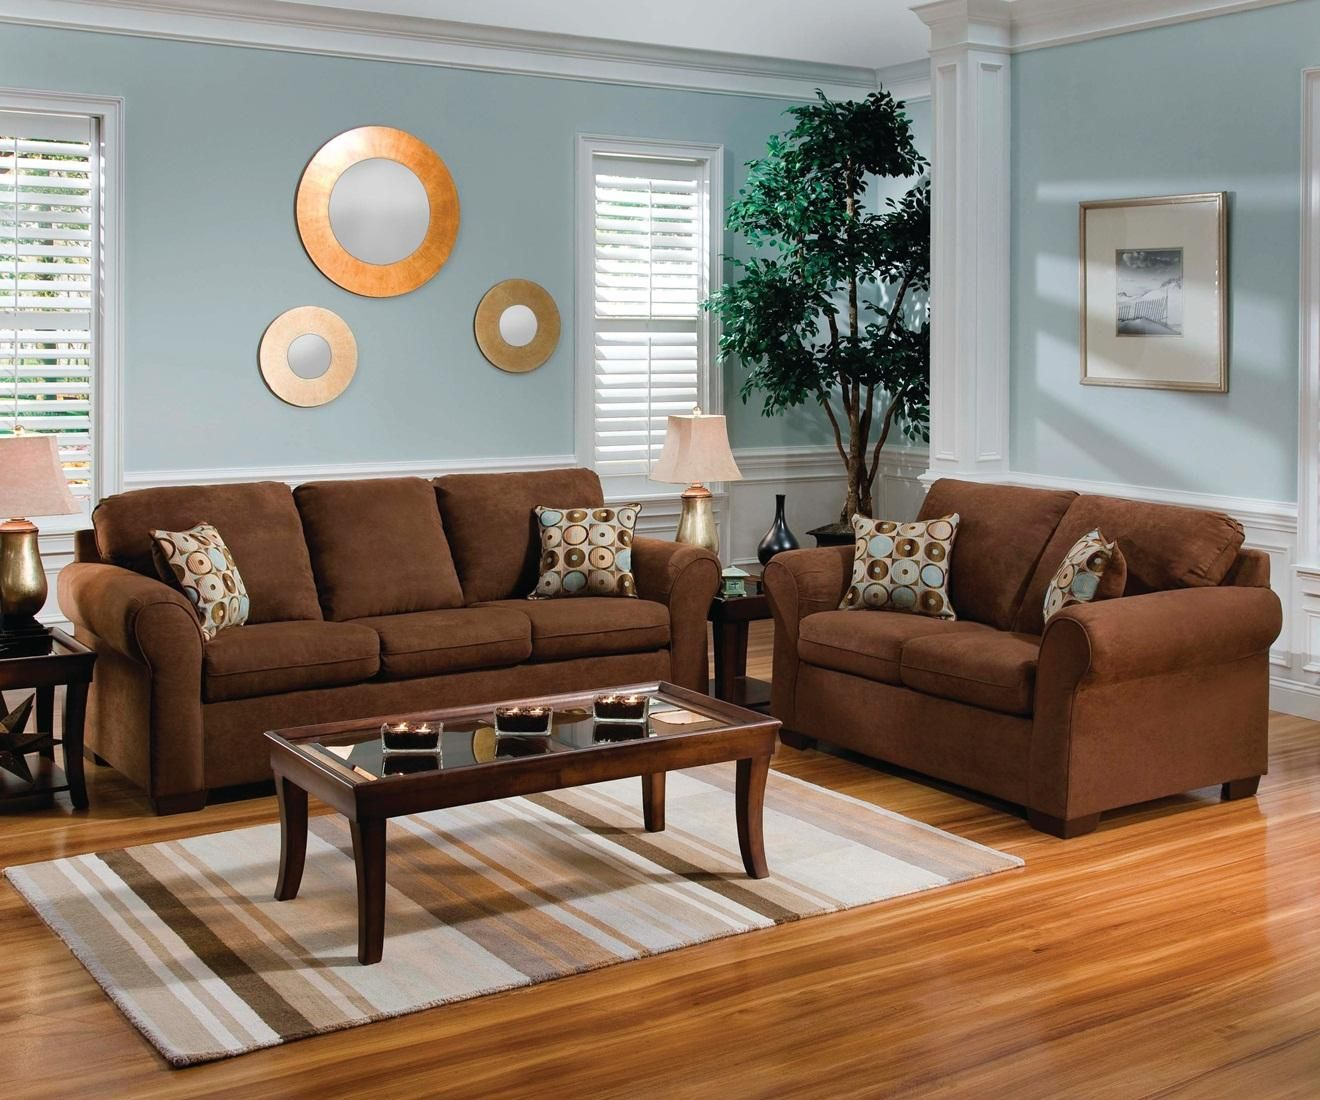 Flat Suede Chocolate Sofa Loveseat Freedom Furniture Electronics Brown Living Room Decor Brown Sofa Living Room Living Room Colors